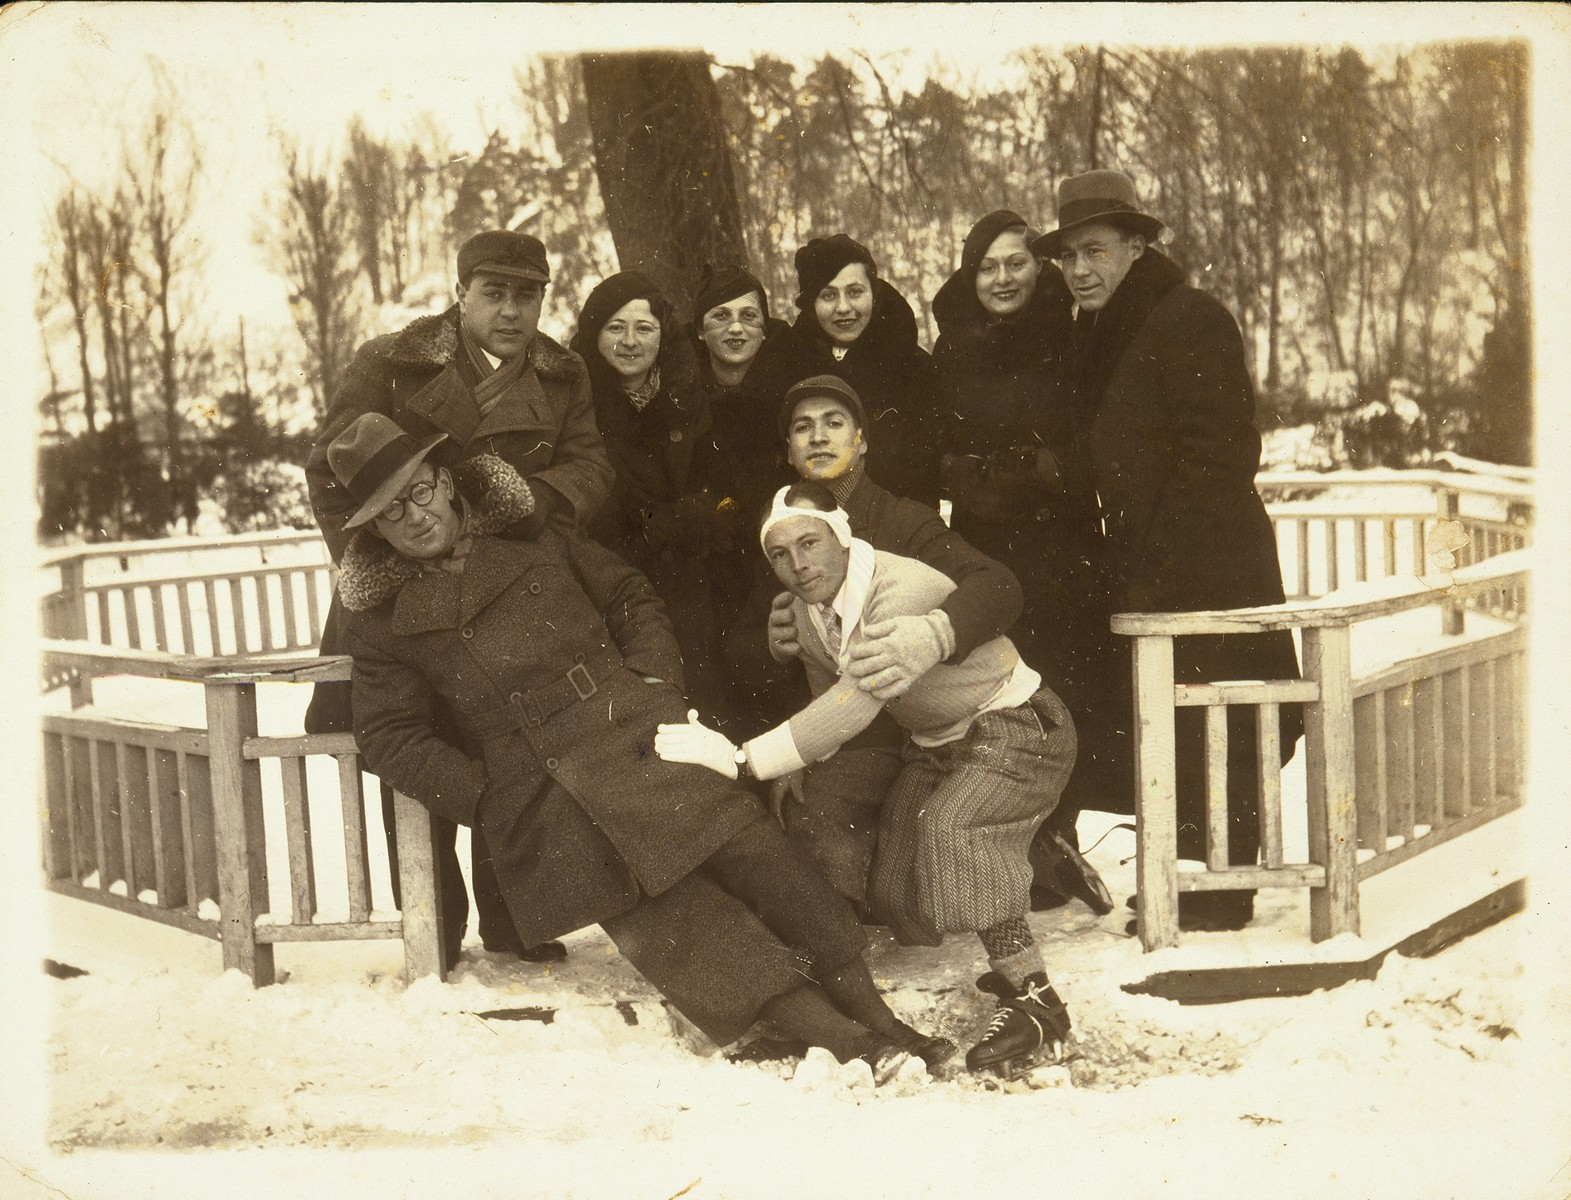 A group of young Jewish men and women from Eisiskes and Vilna pose outside in the snow.  Among those pictured are Feigele Blacher (standing in the back, second from the right) and Sara Haske Lubetski Dugaczanski.